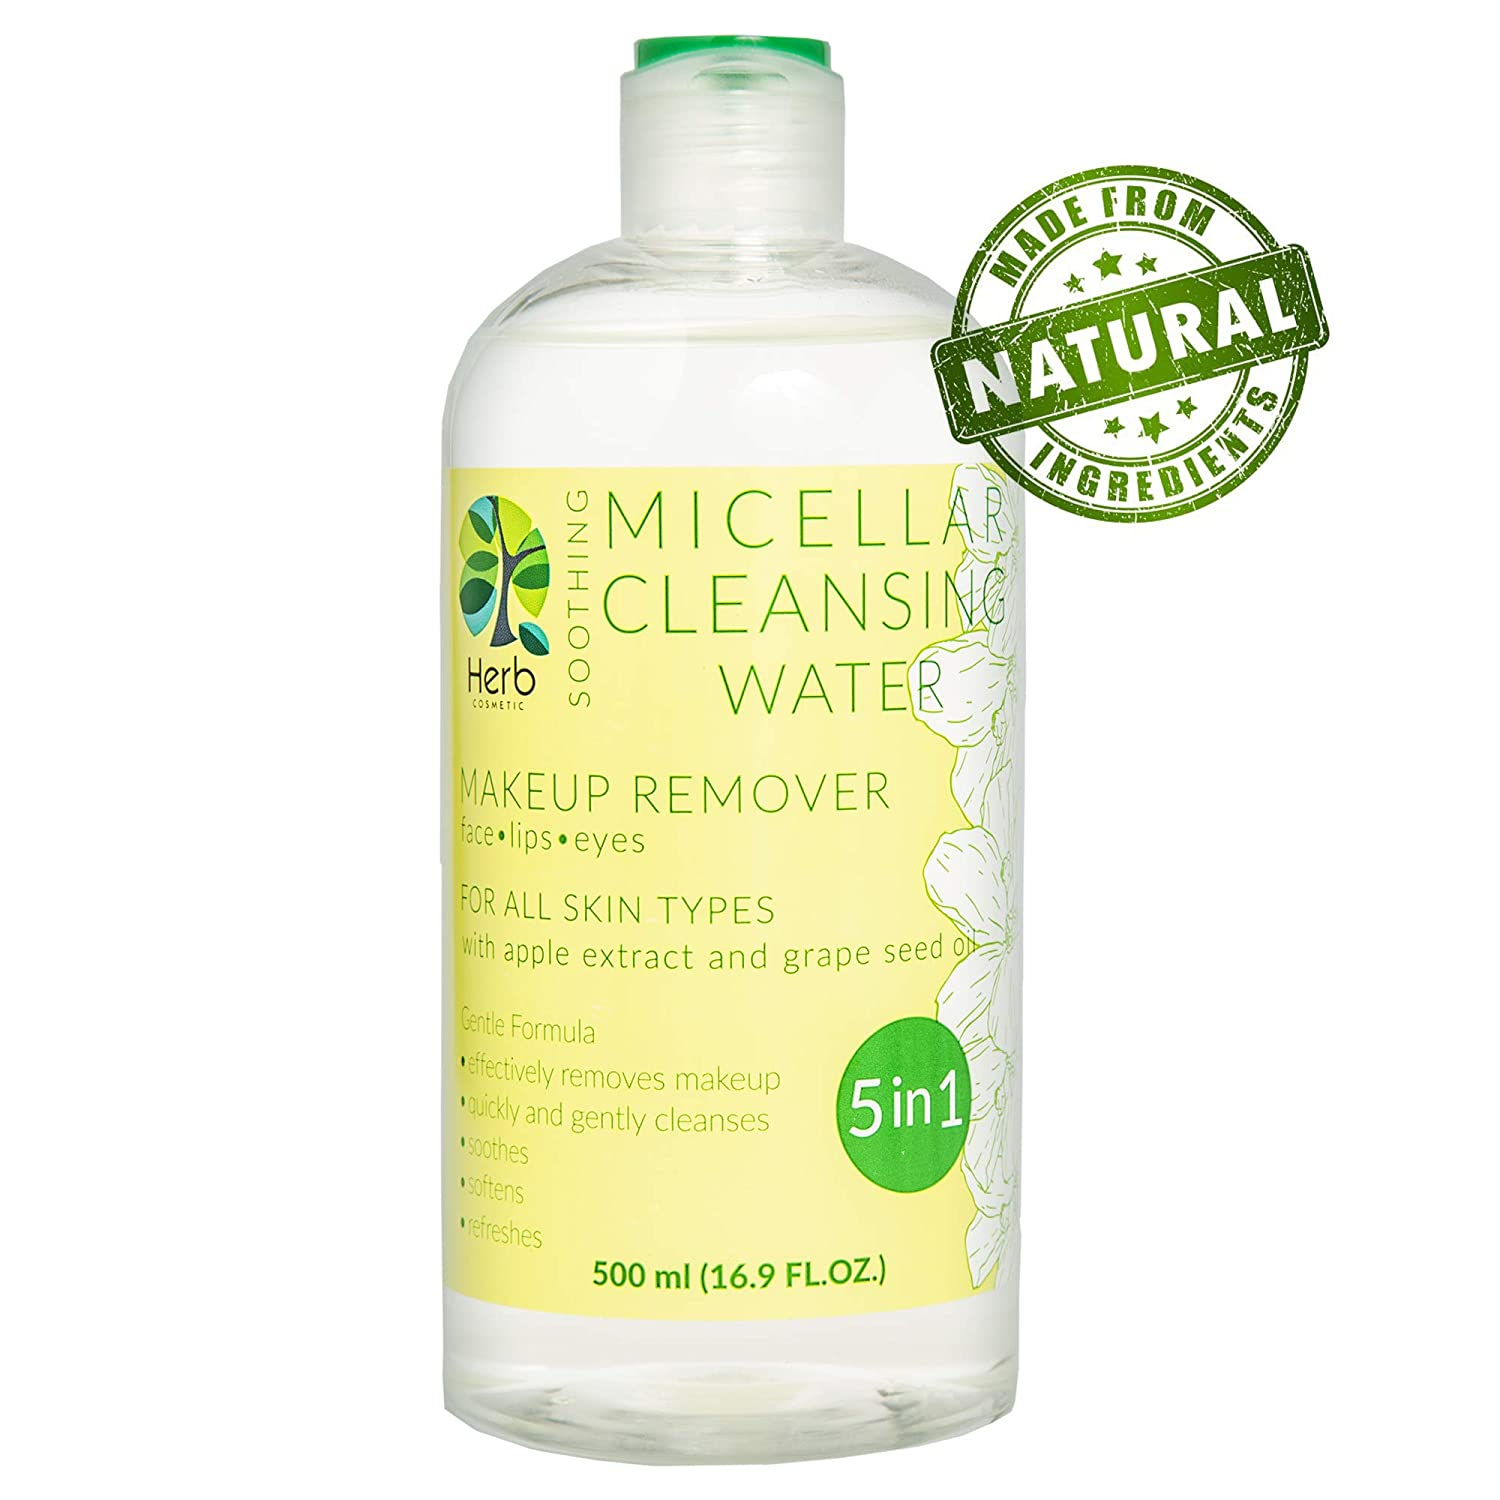 Amazon.com : Micellar Cleansing Water Natural Makeup Remover 16.9 oz : Beauty